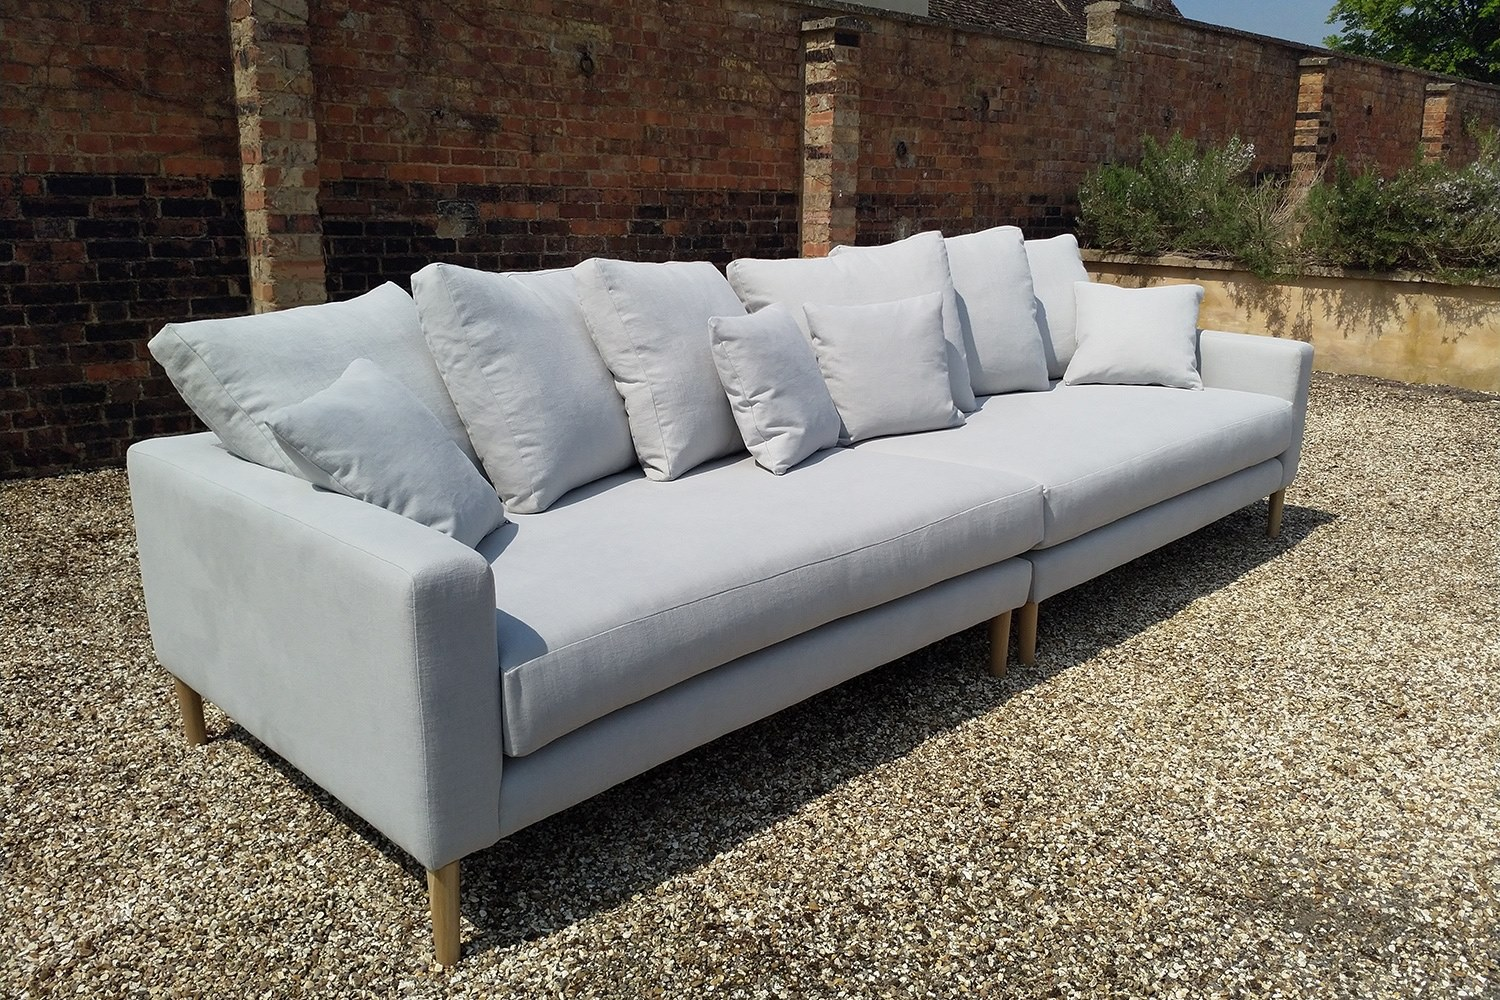 Large Bespoke Sofa